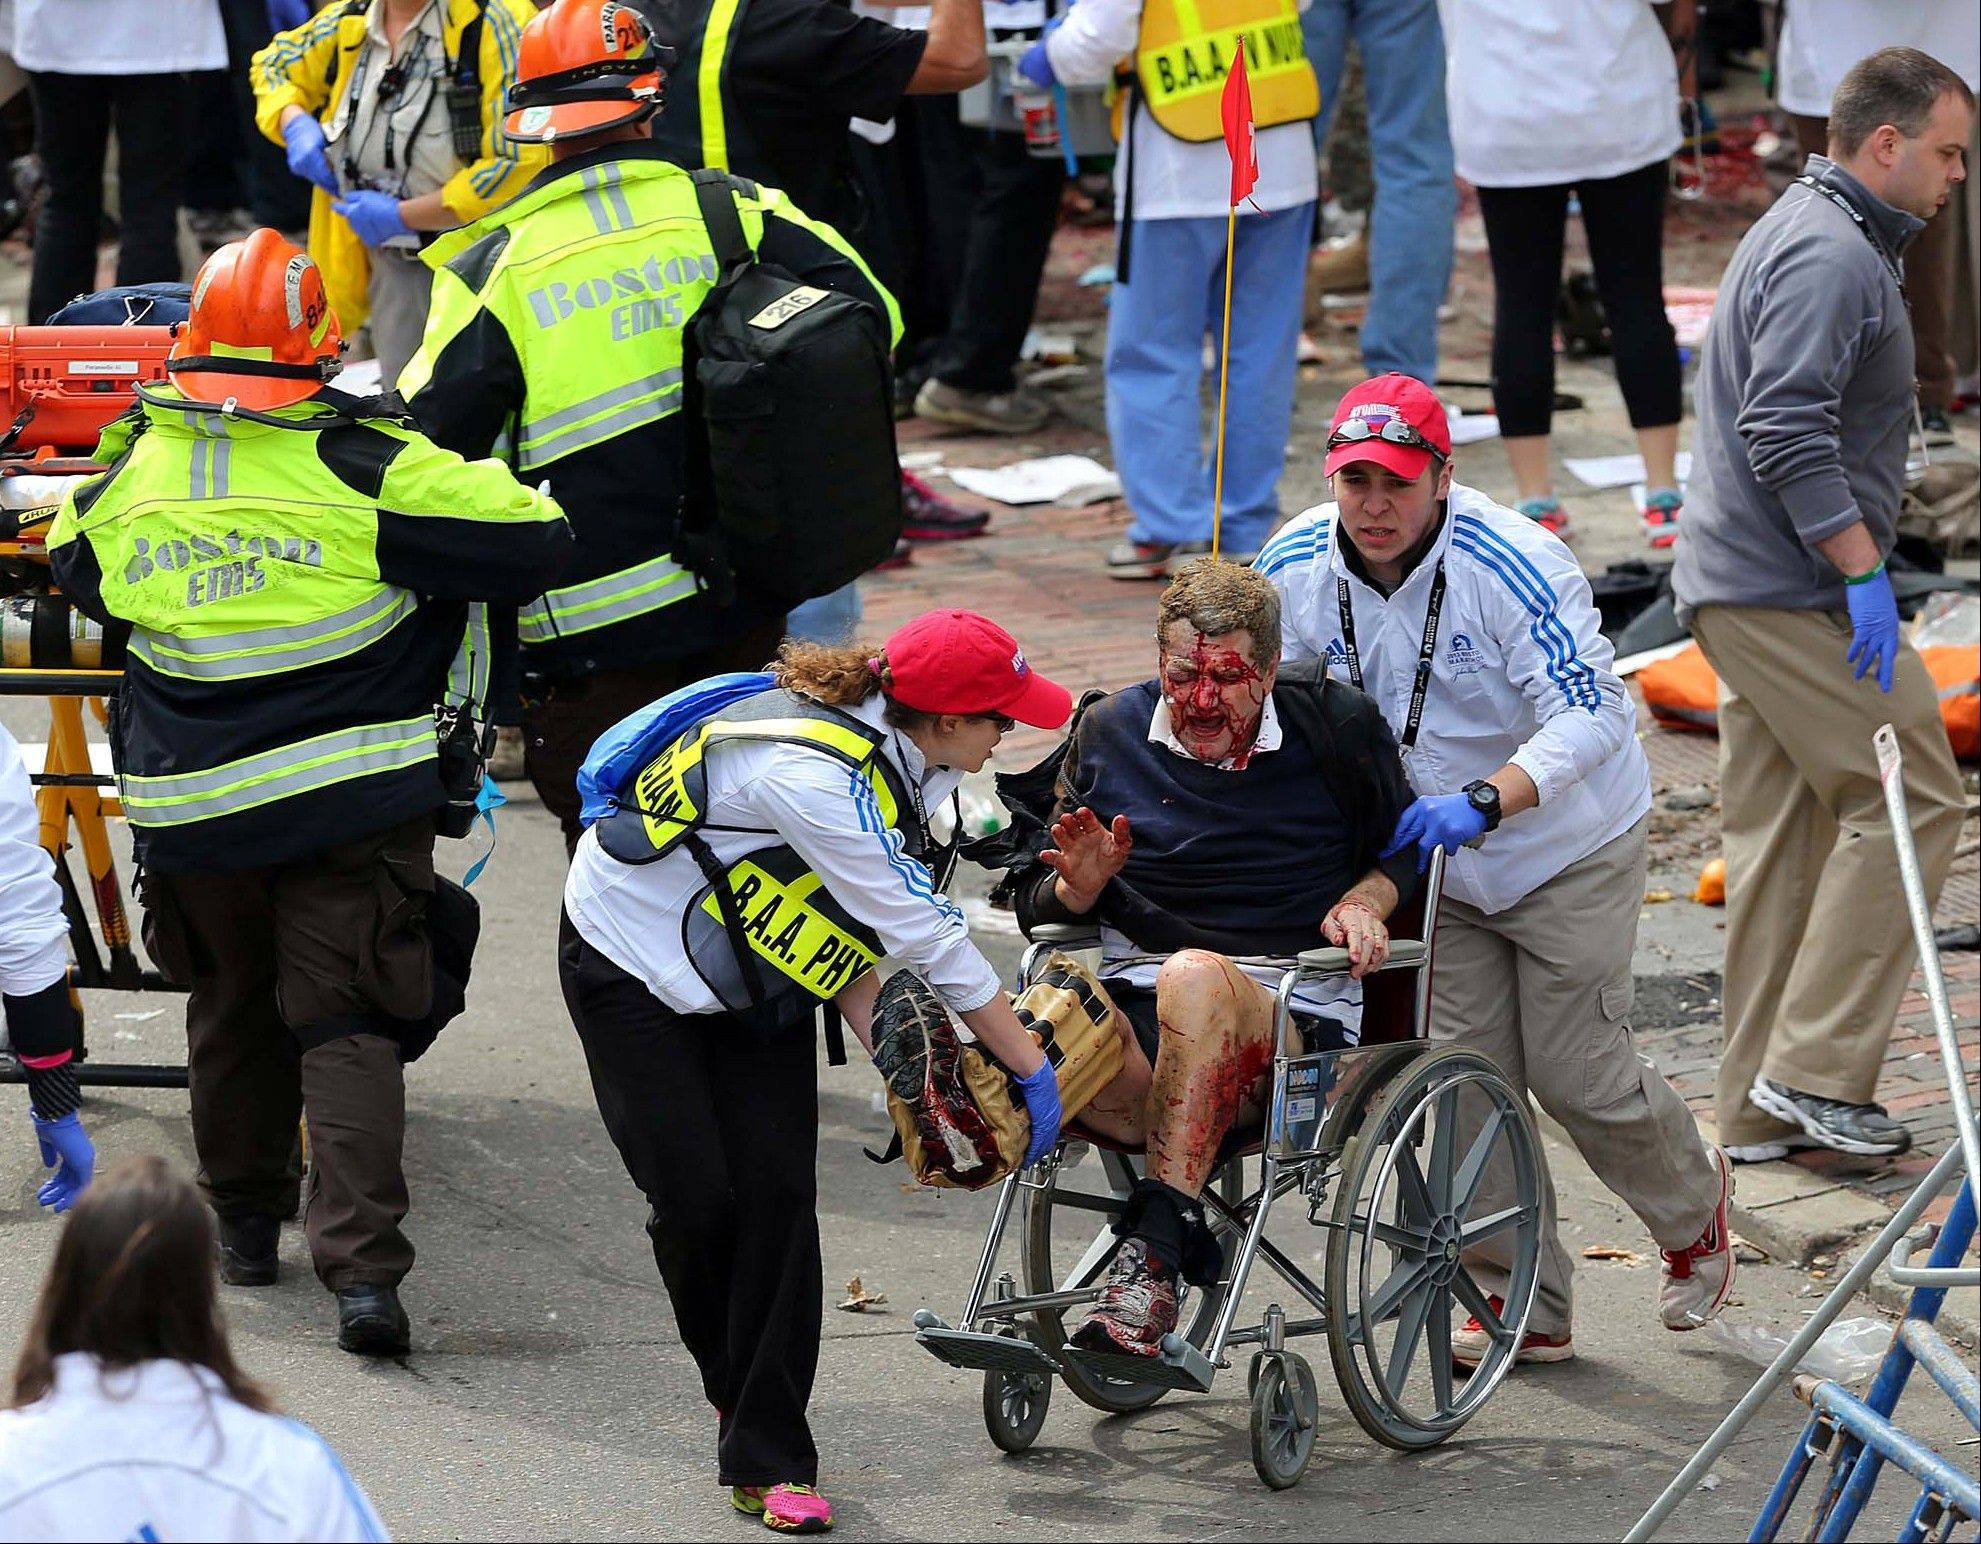 Images: Explosions at the Boston Marathon